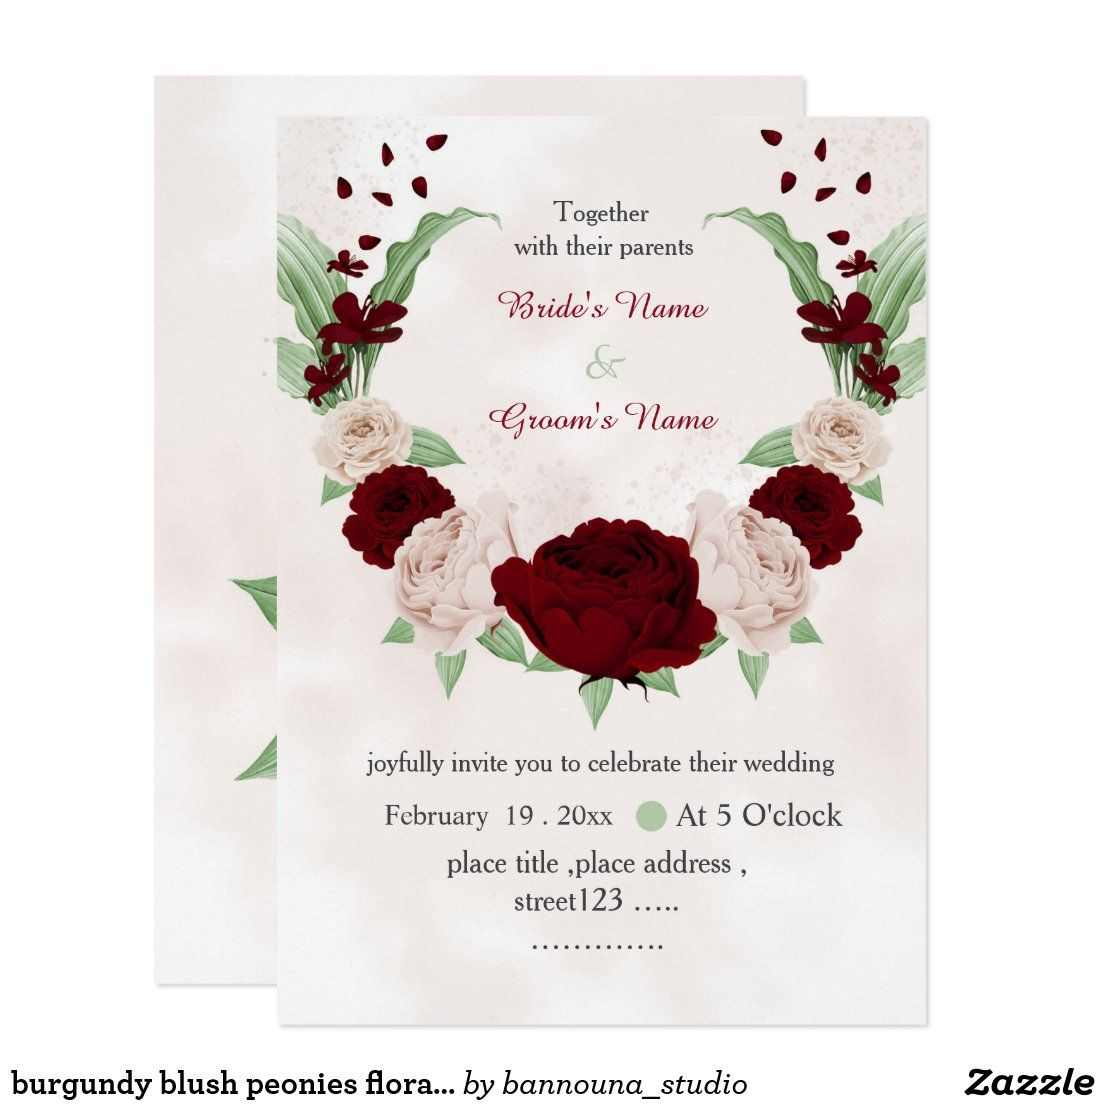 burgundy blush peonies floral wreath wedding invitation | Zazzle.com